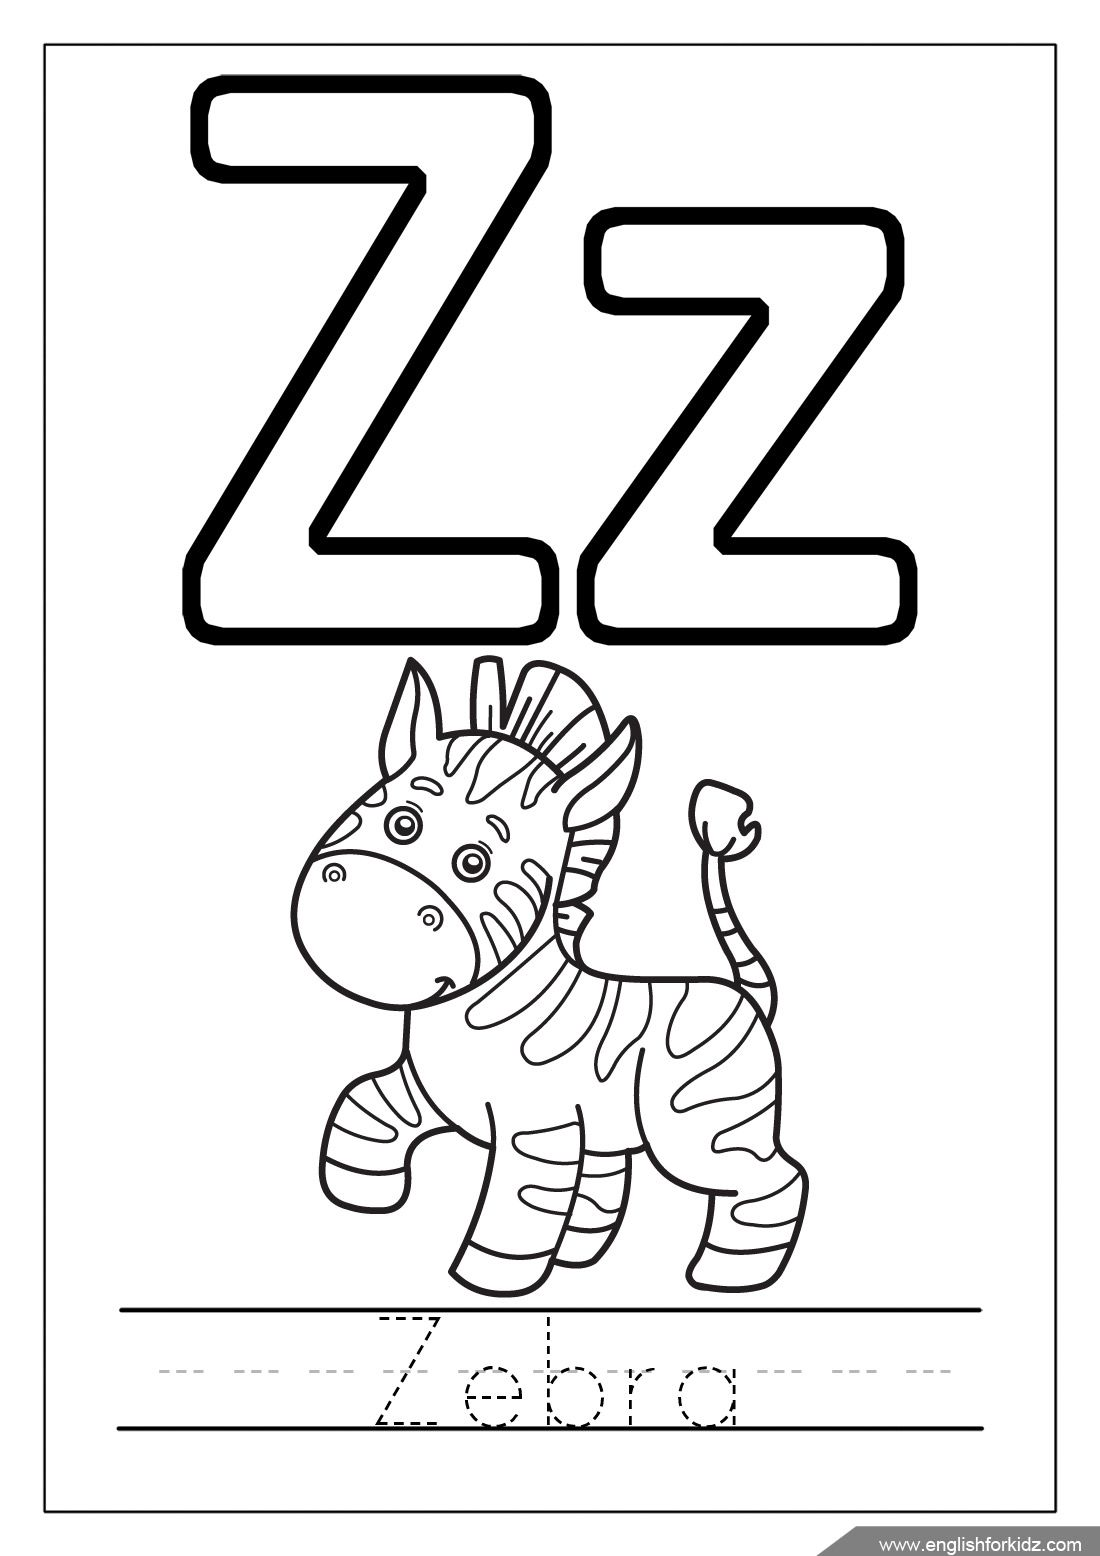 Alphabet coloring page, letter Z coloring, zebra coloring | English ...